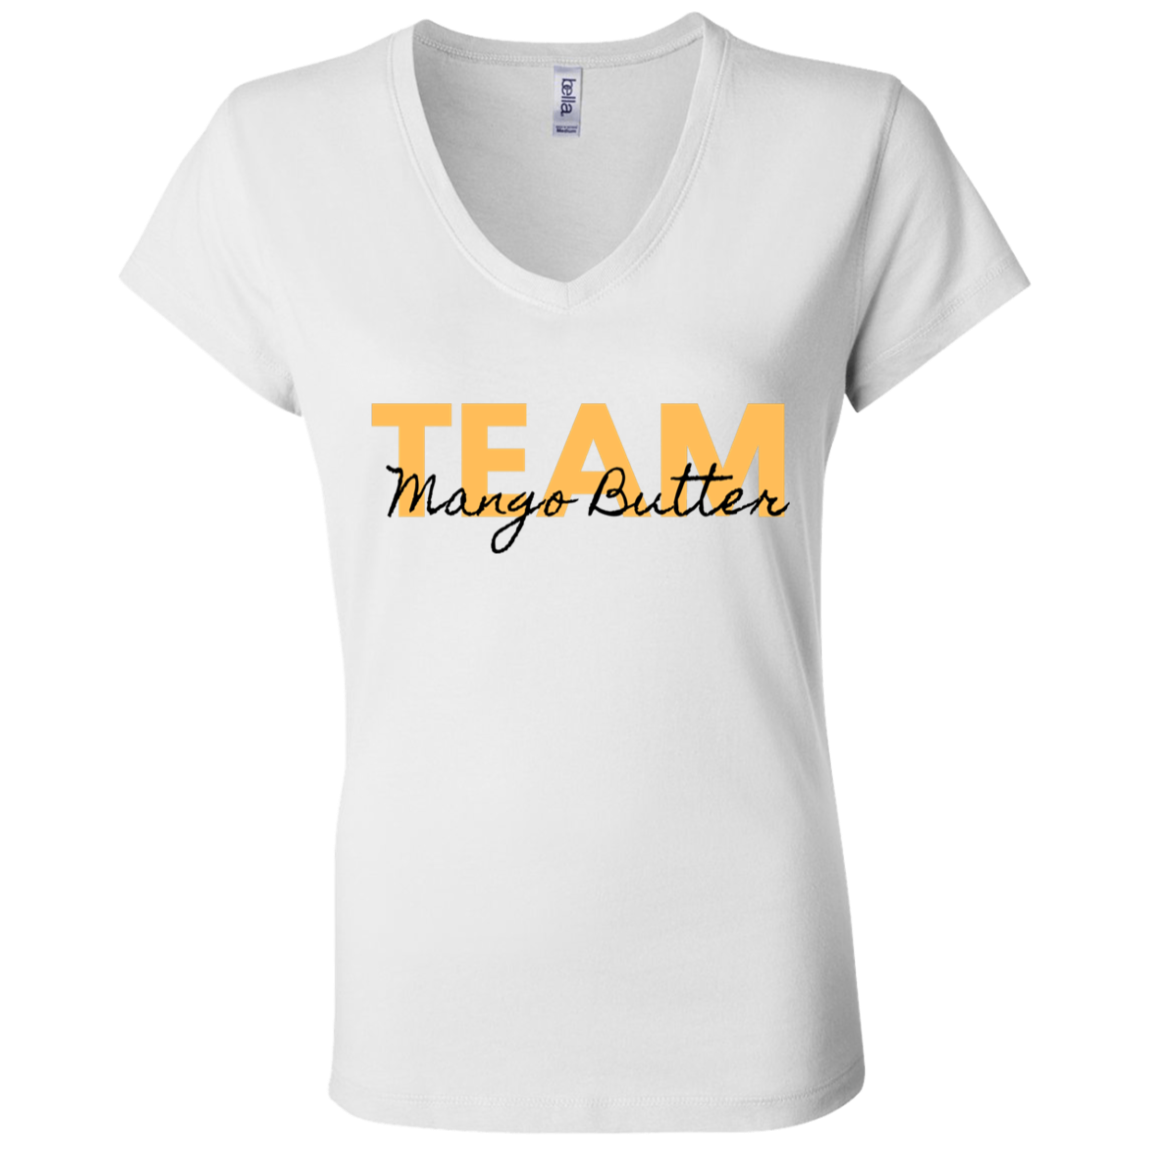 Team Mango Butter Ladies' V-Neck T-Shirt